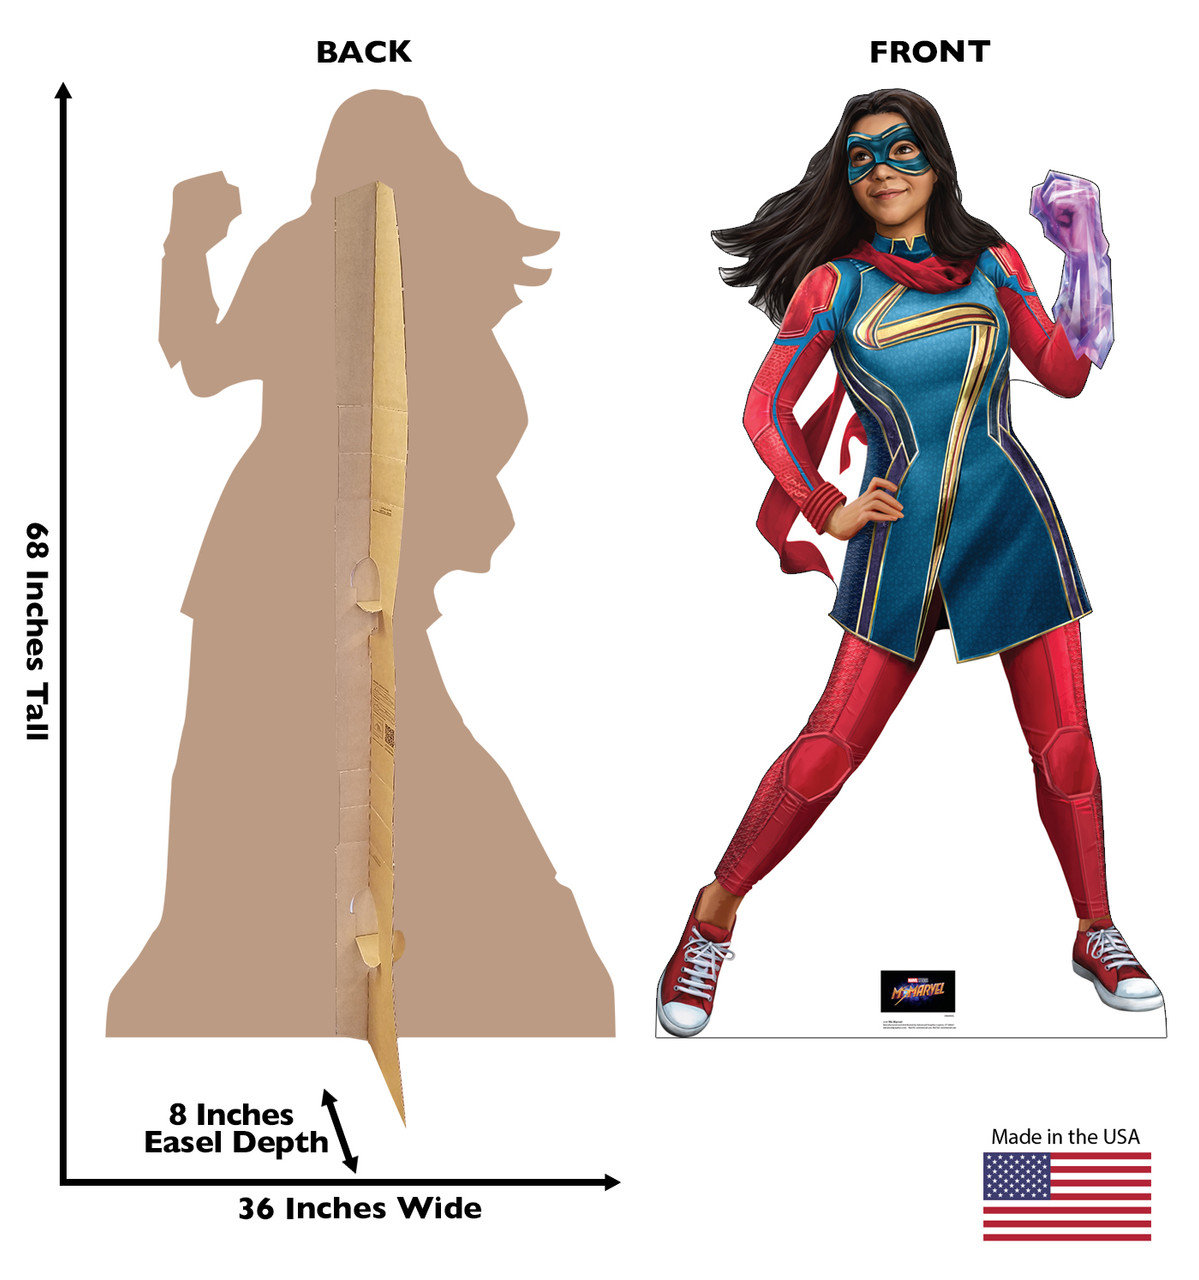 Life-size cardboard standee of Ms. Marvel from Marvel Studios Ms. Marvel on Disney + with front and back dimensions.